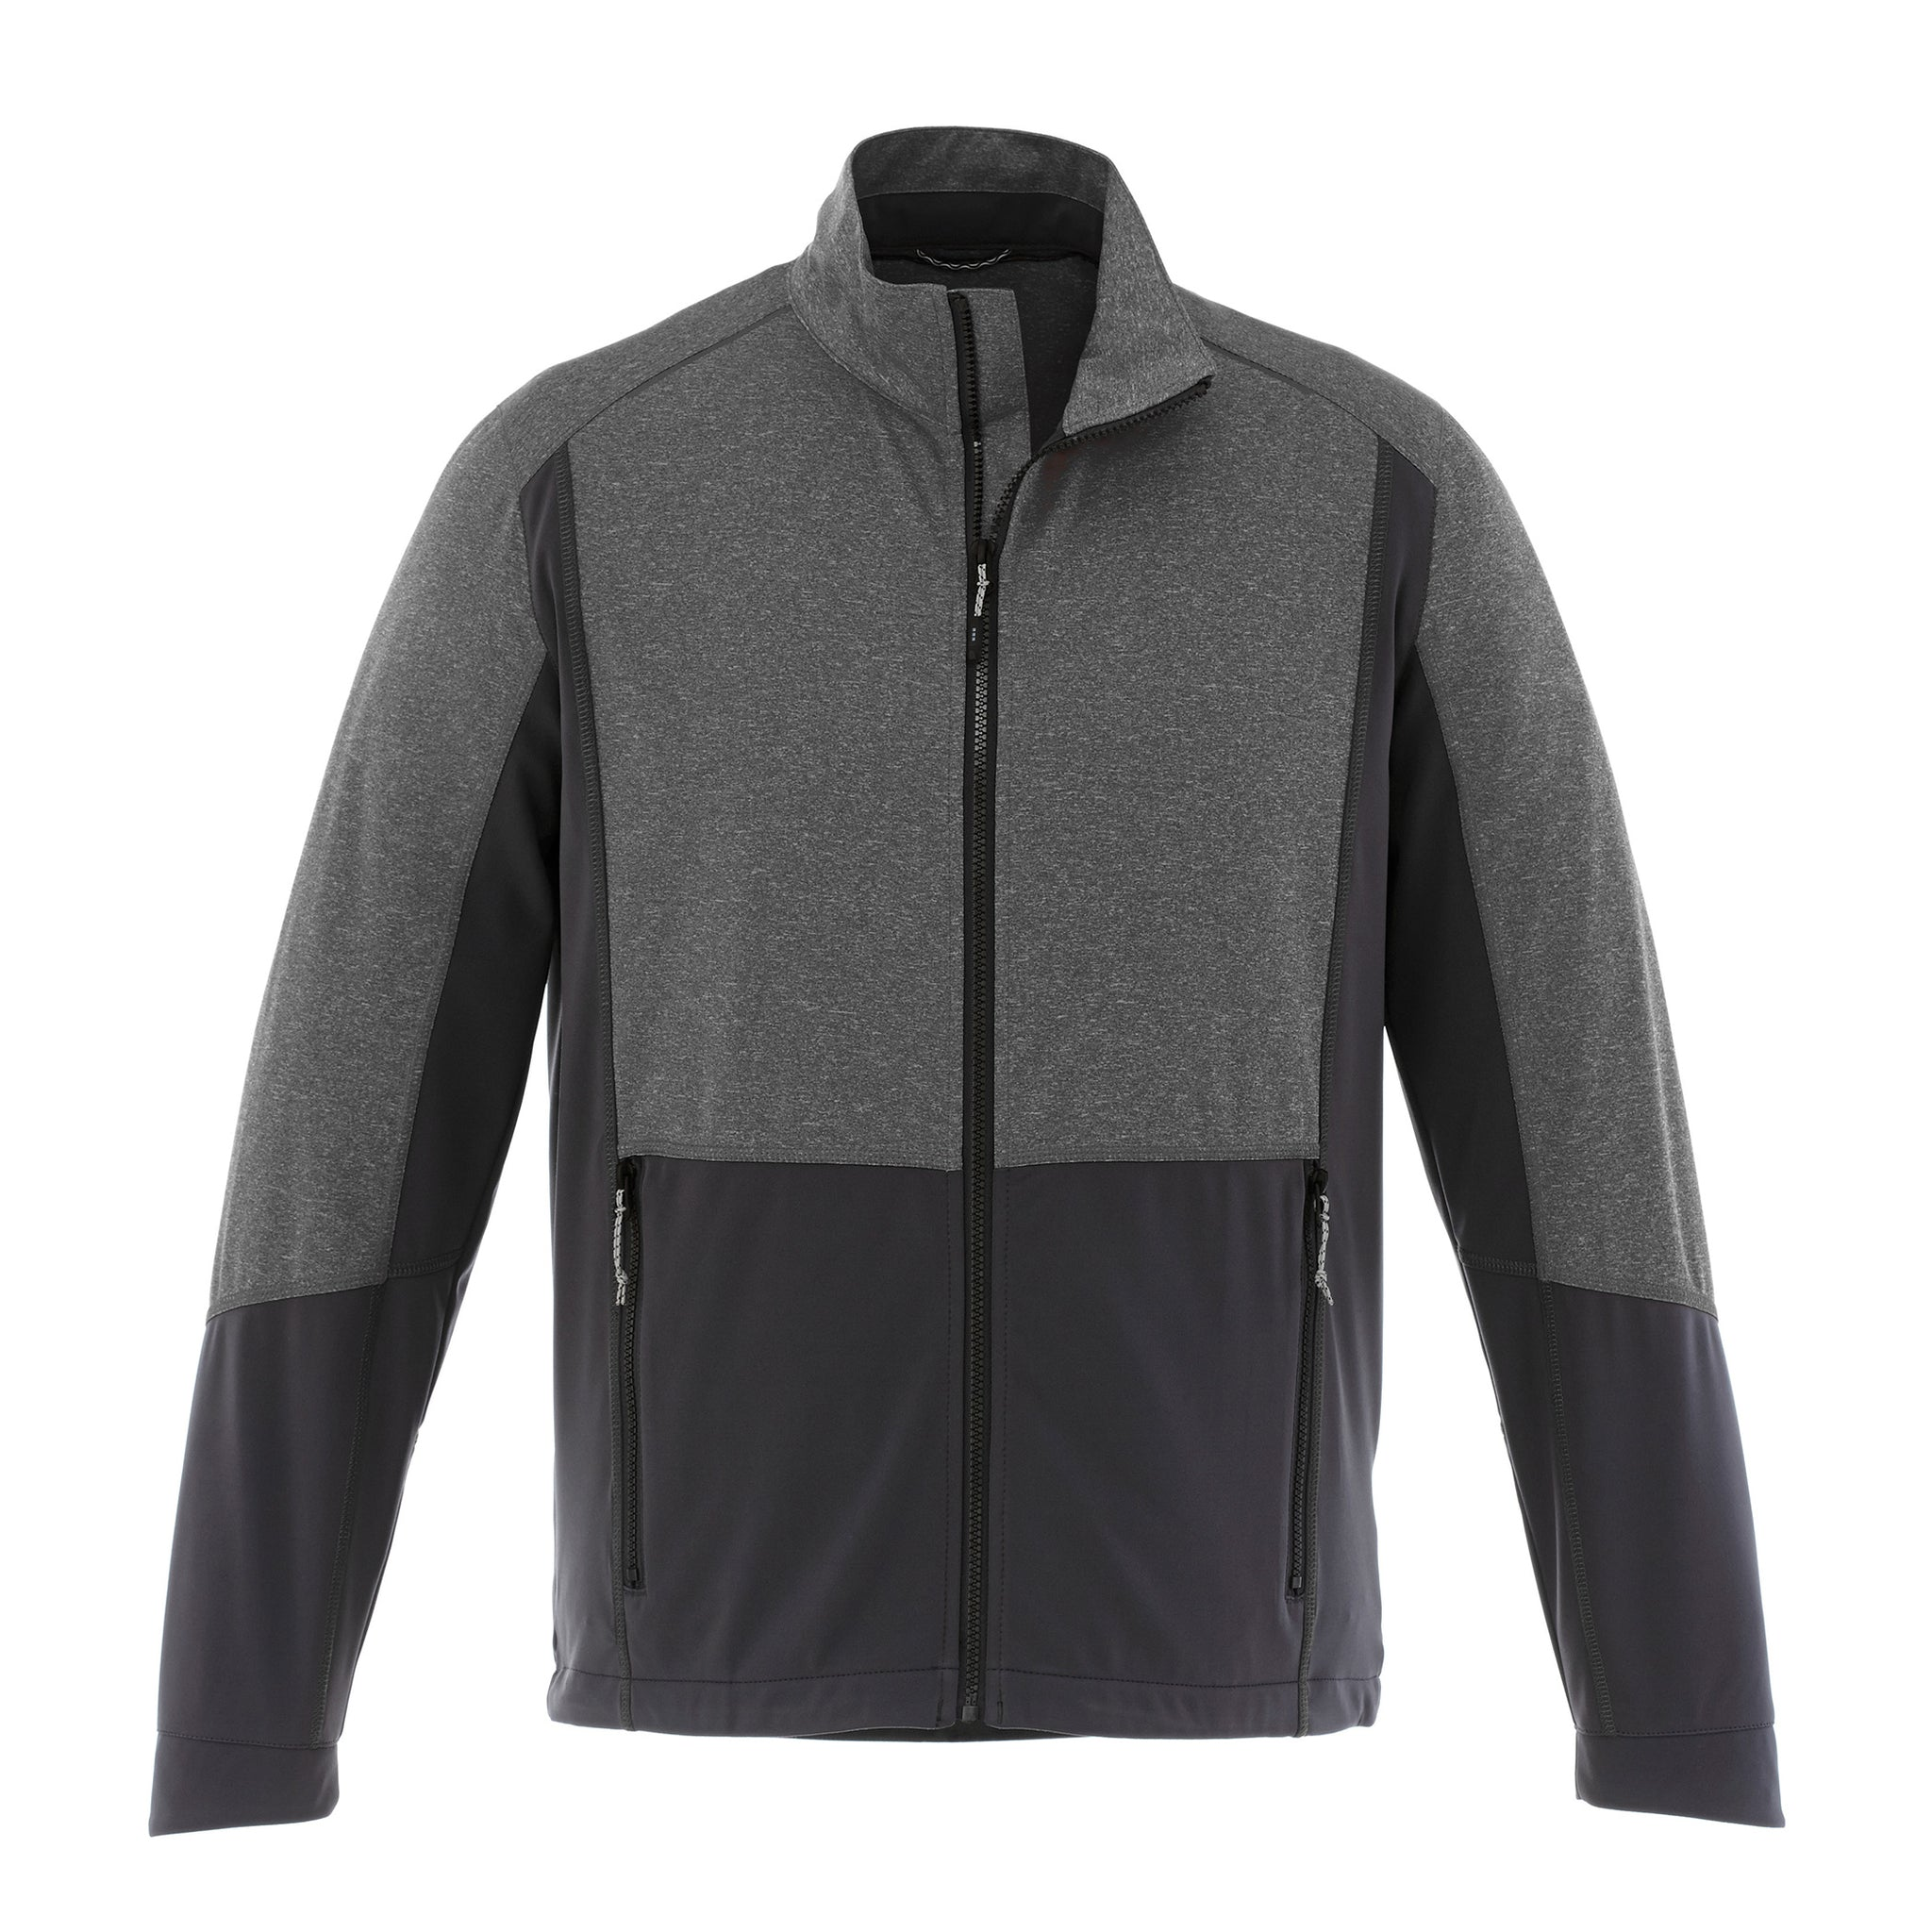 ELEVATE MEN'S VERDI HYBRID SOFT SHELL JACKET